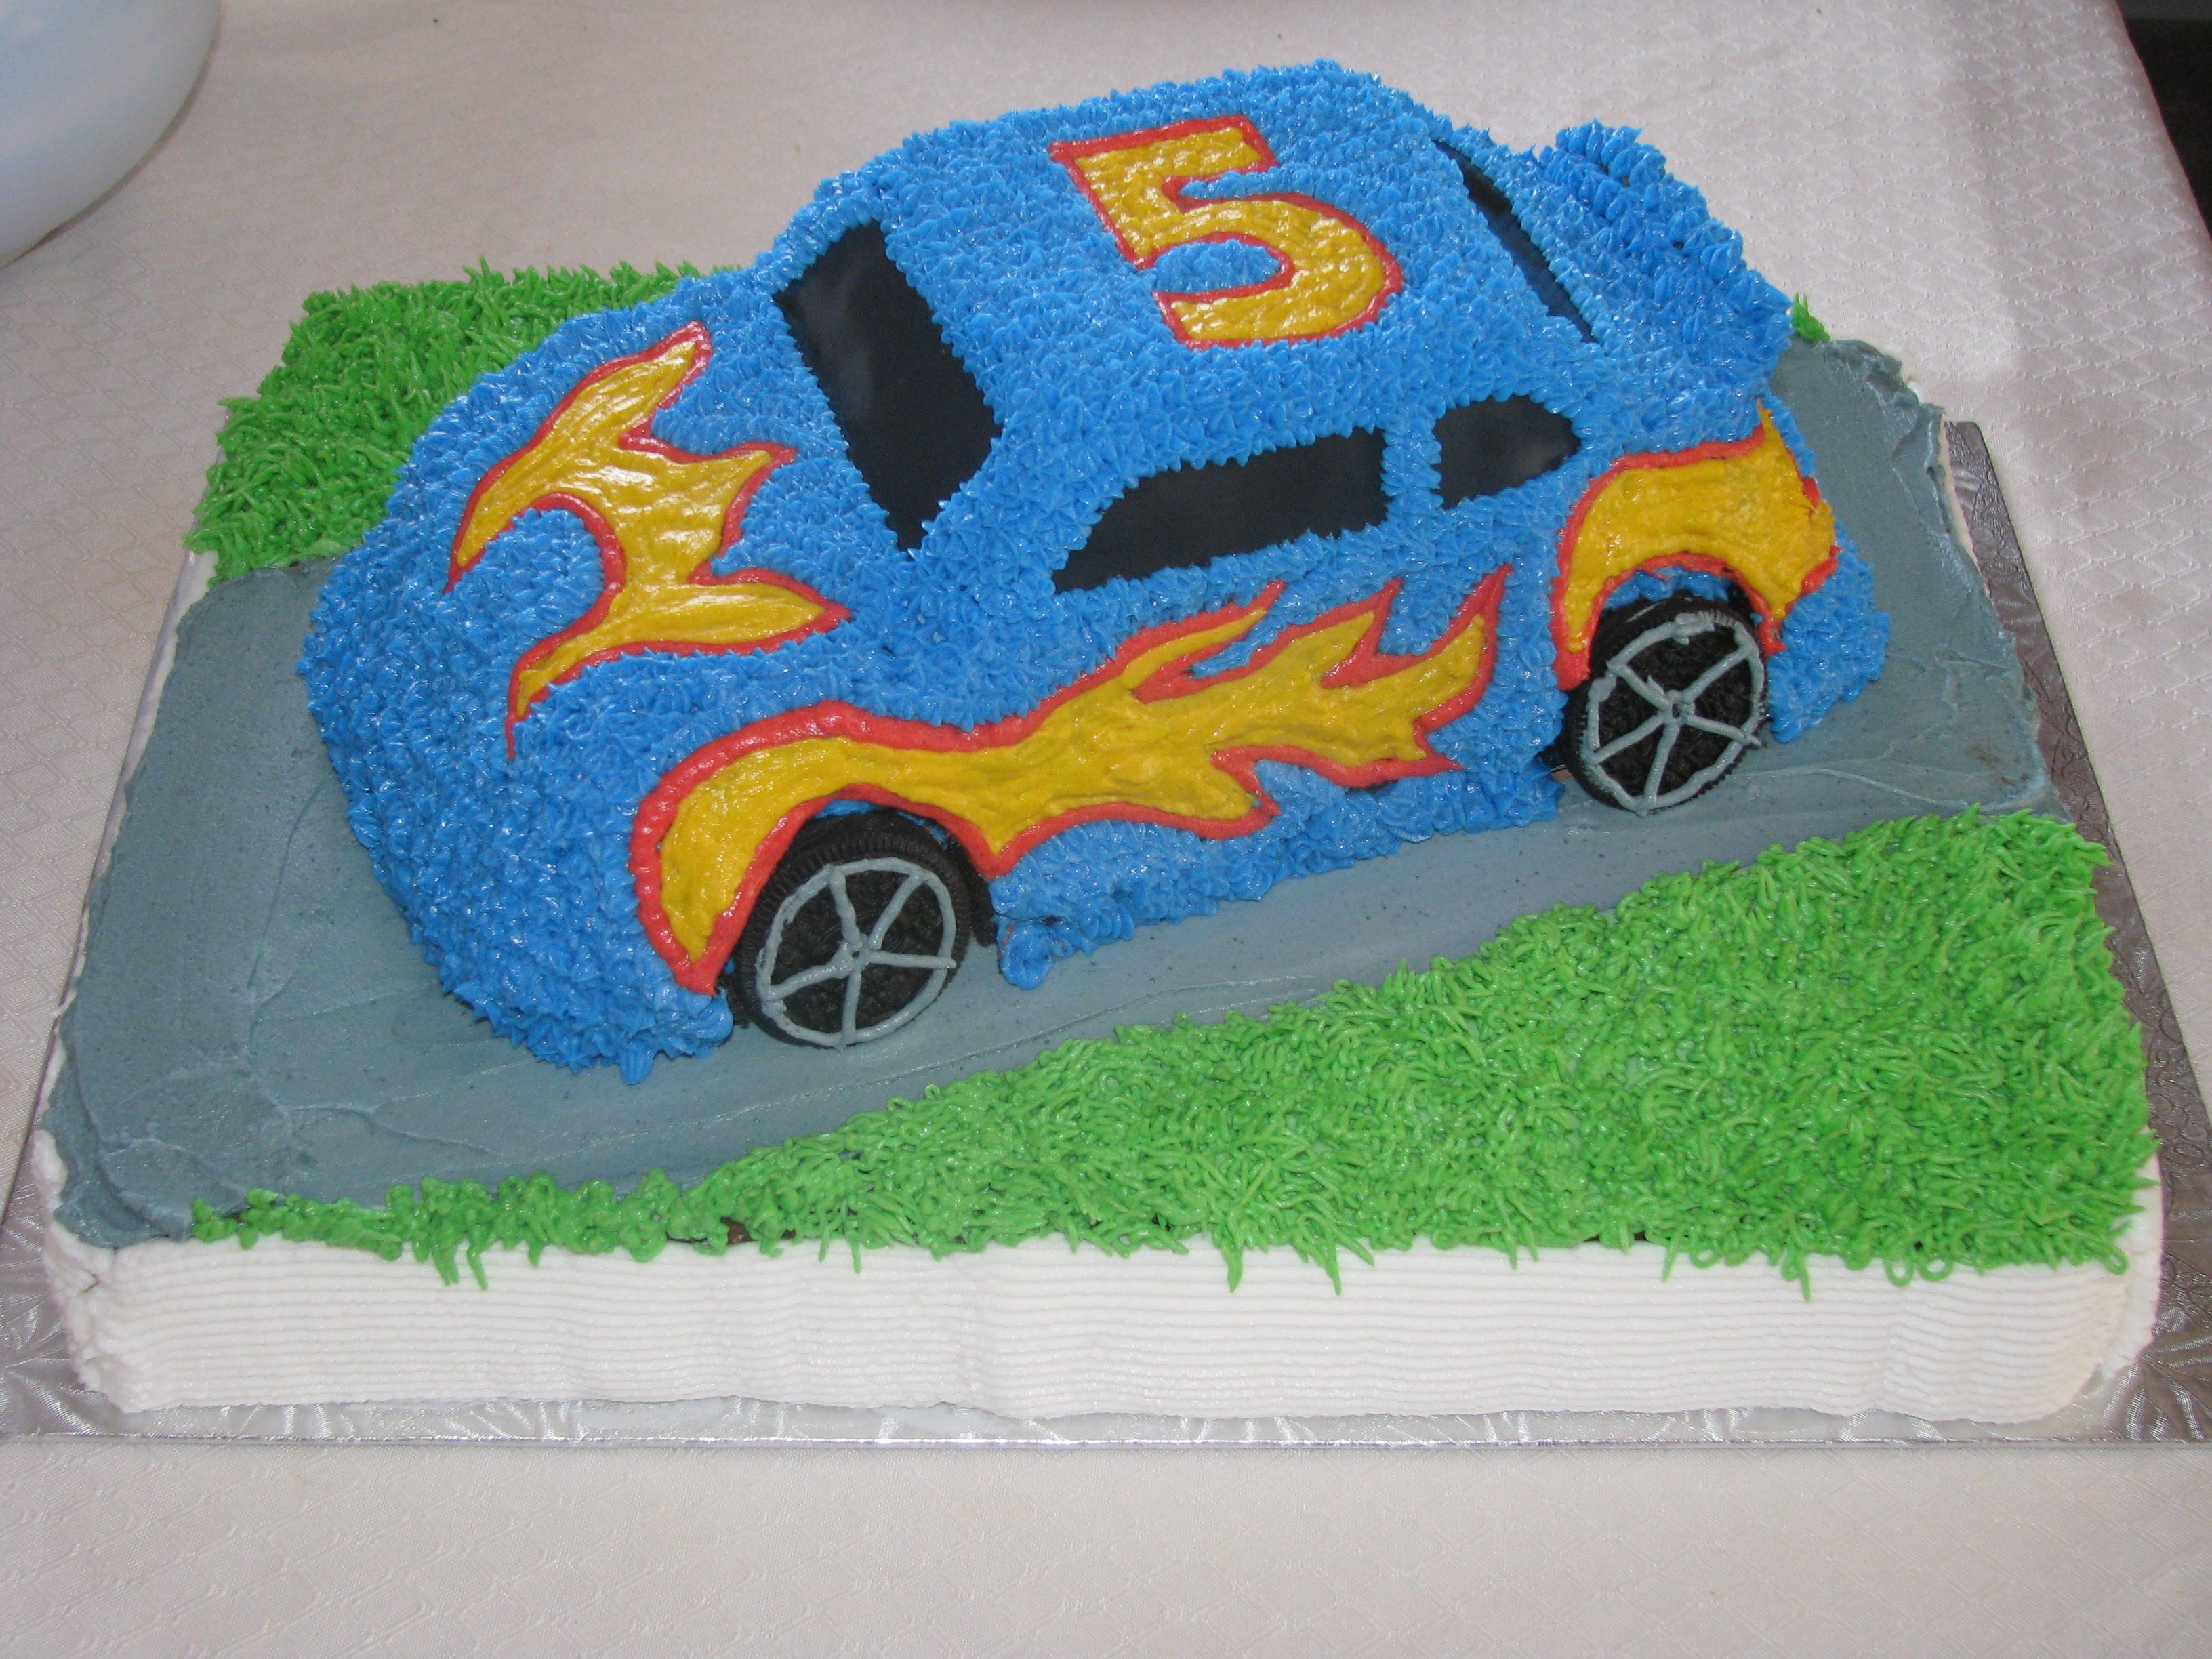 3d Hot Wheels Car Cake With Images Race Car Cakes Hot Wheels